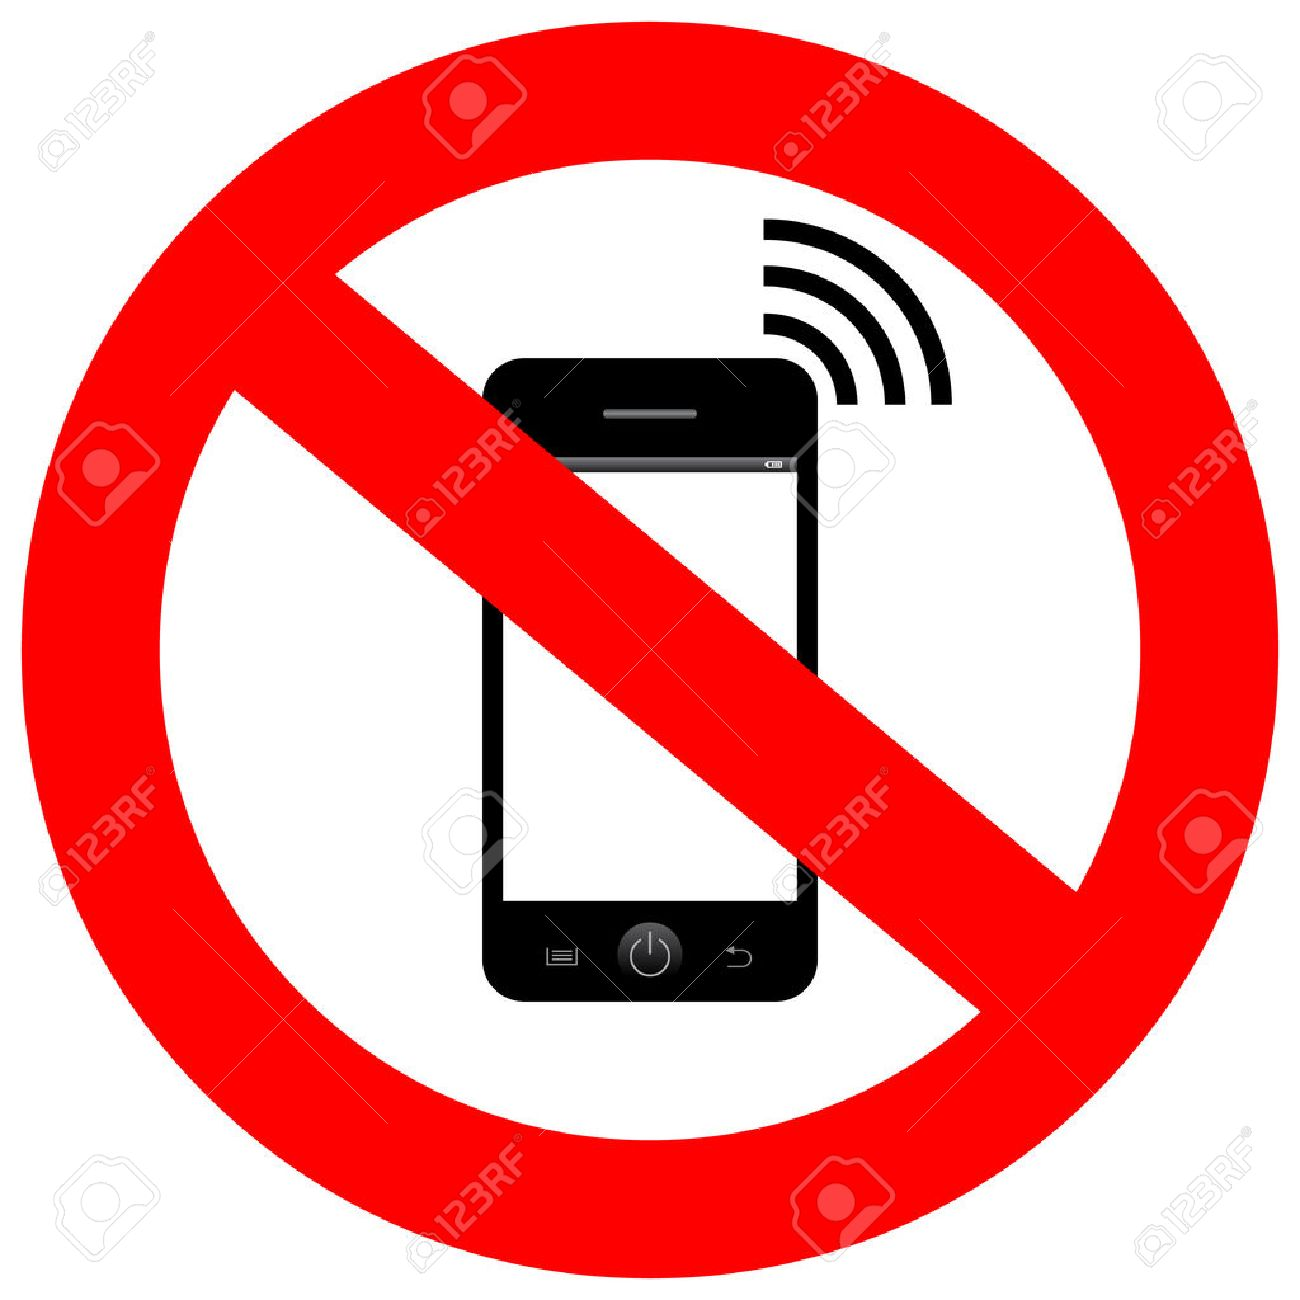 No mobile phone sign.